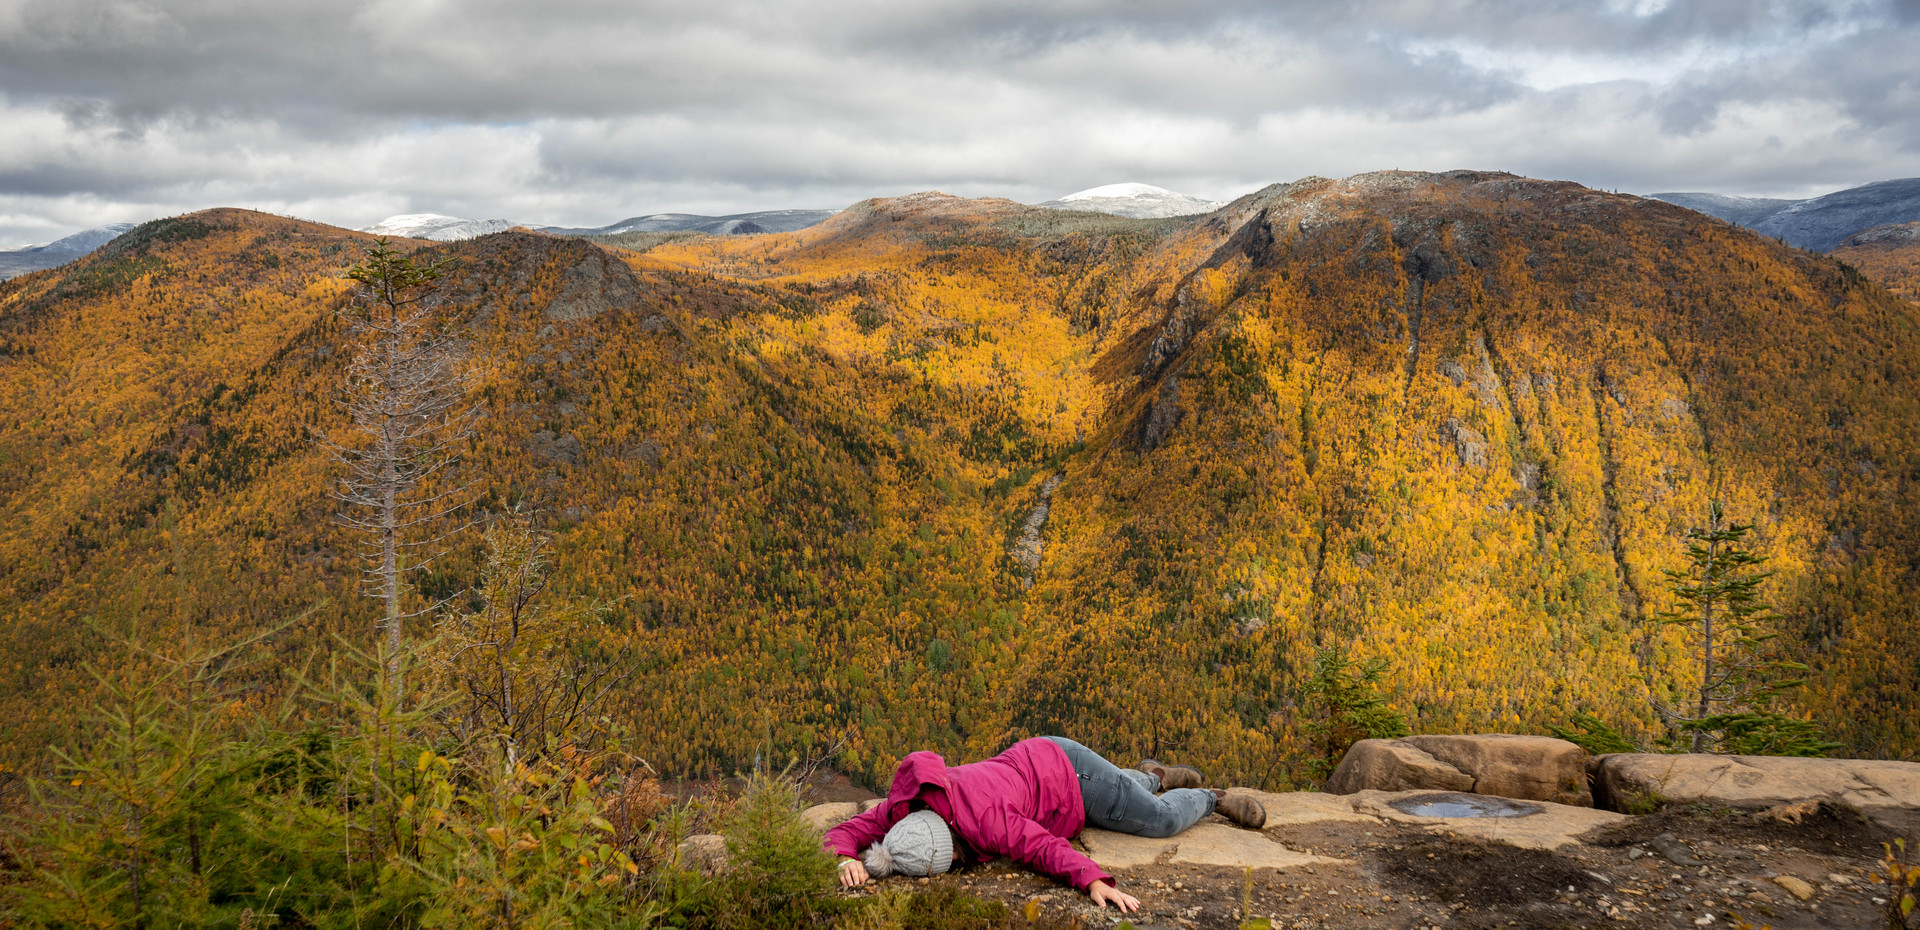 Hike the incredible Chic-Choc Mountains (and perhaps take a nap up top)